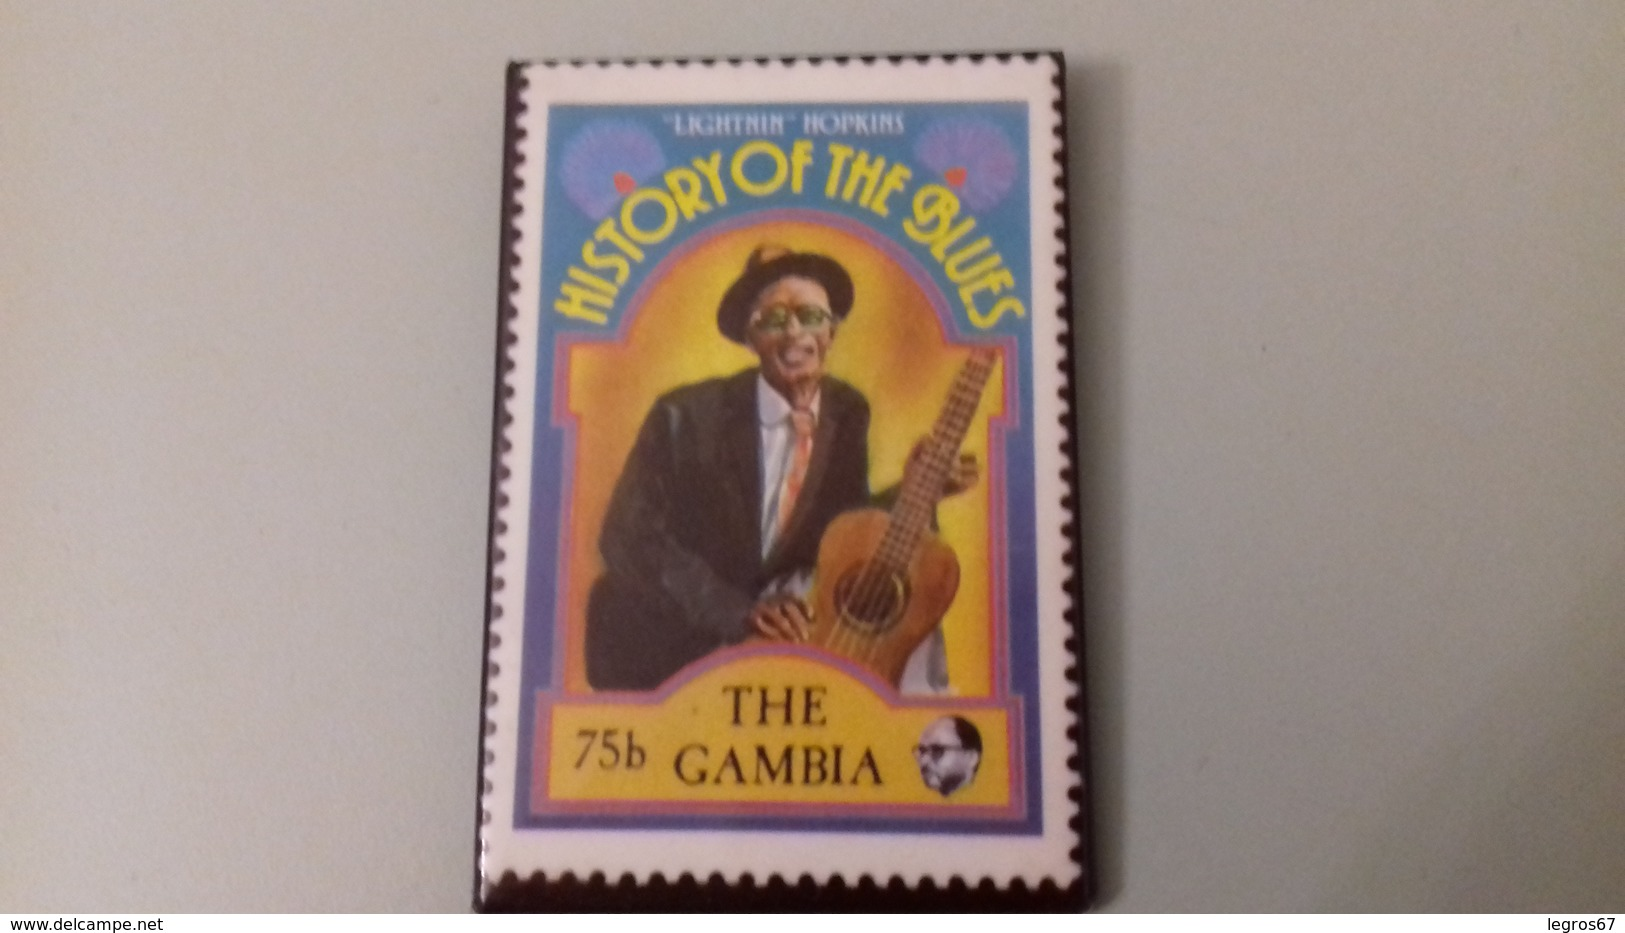 MAGNET THE GAMBIA - Tourisme